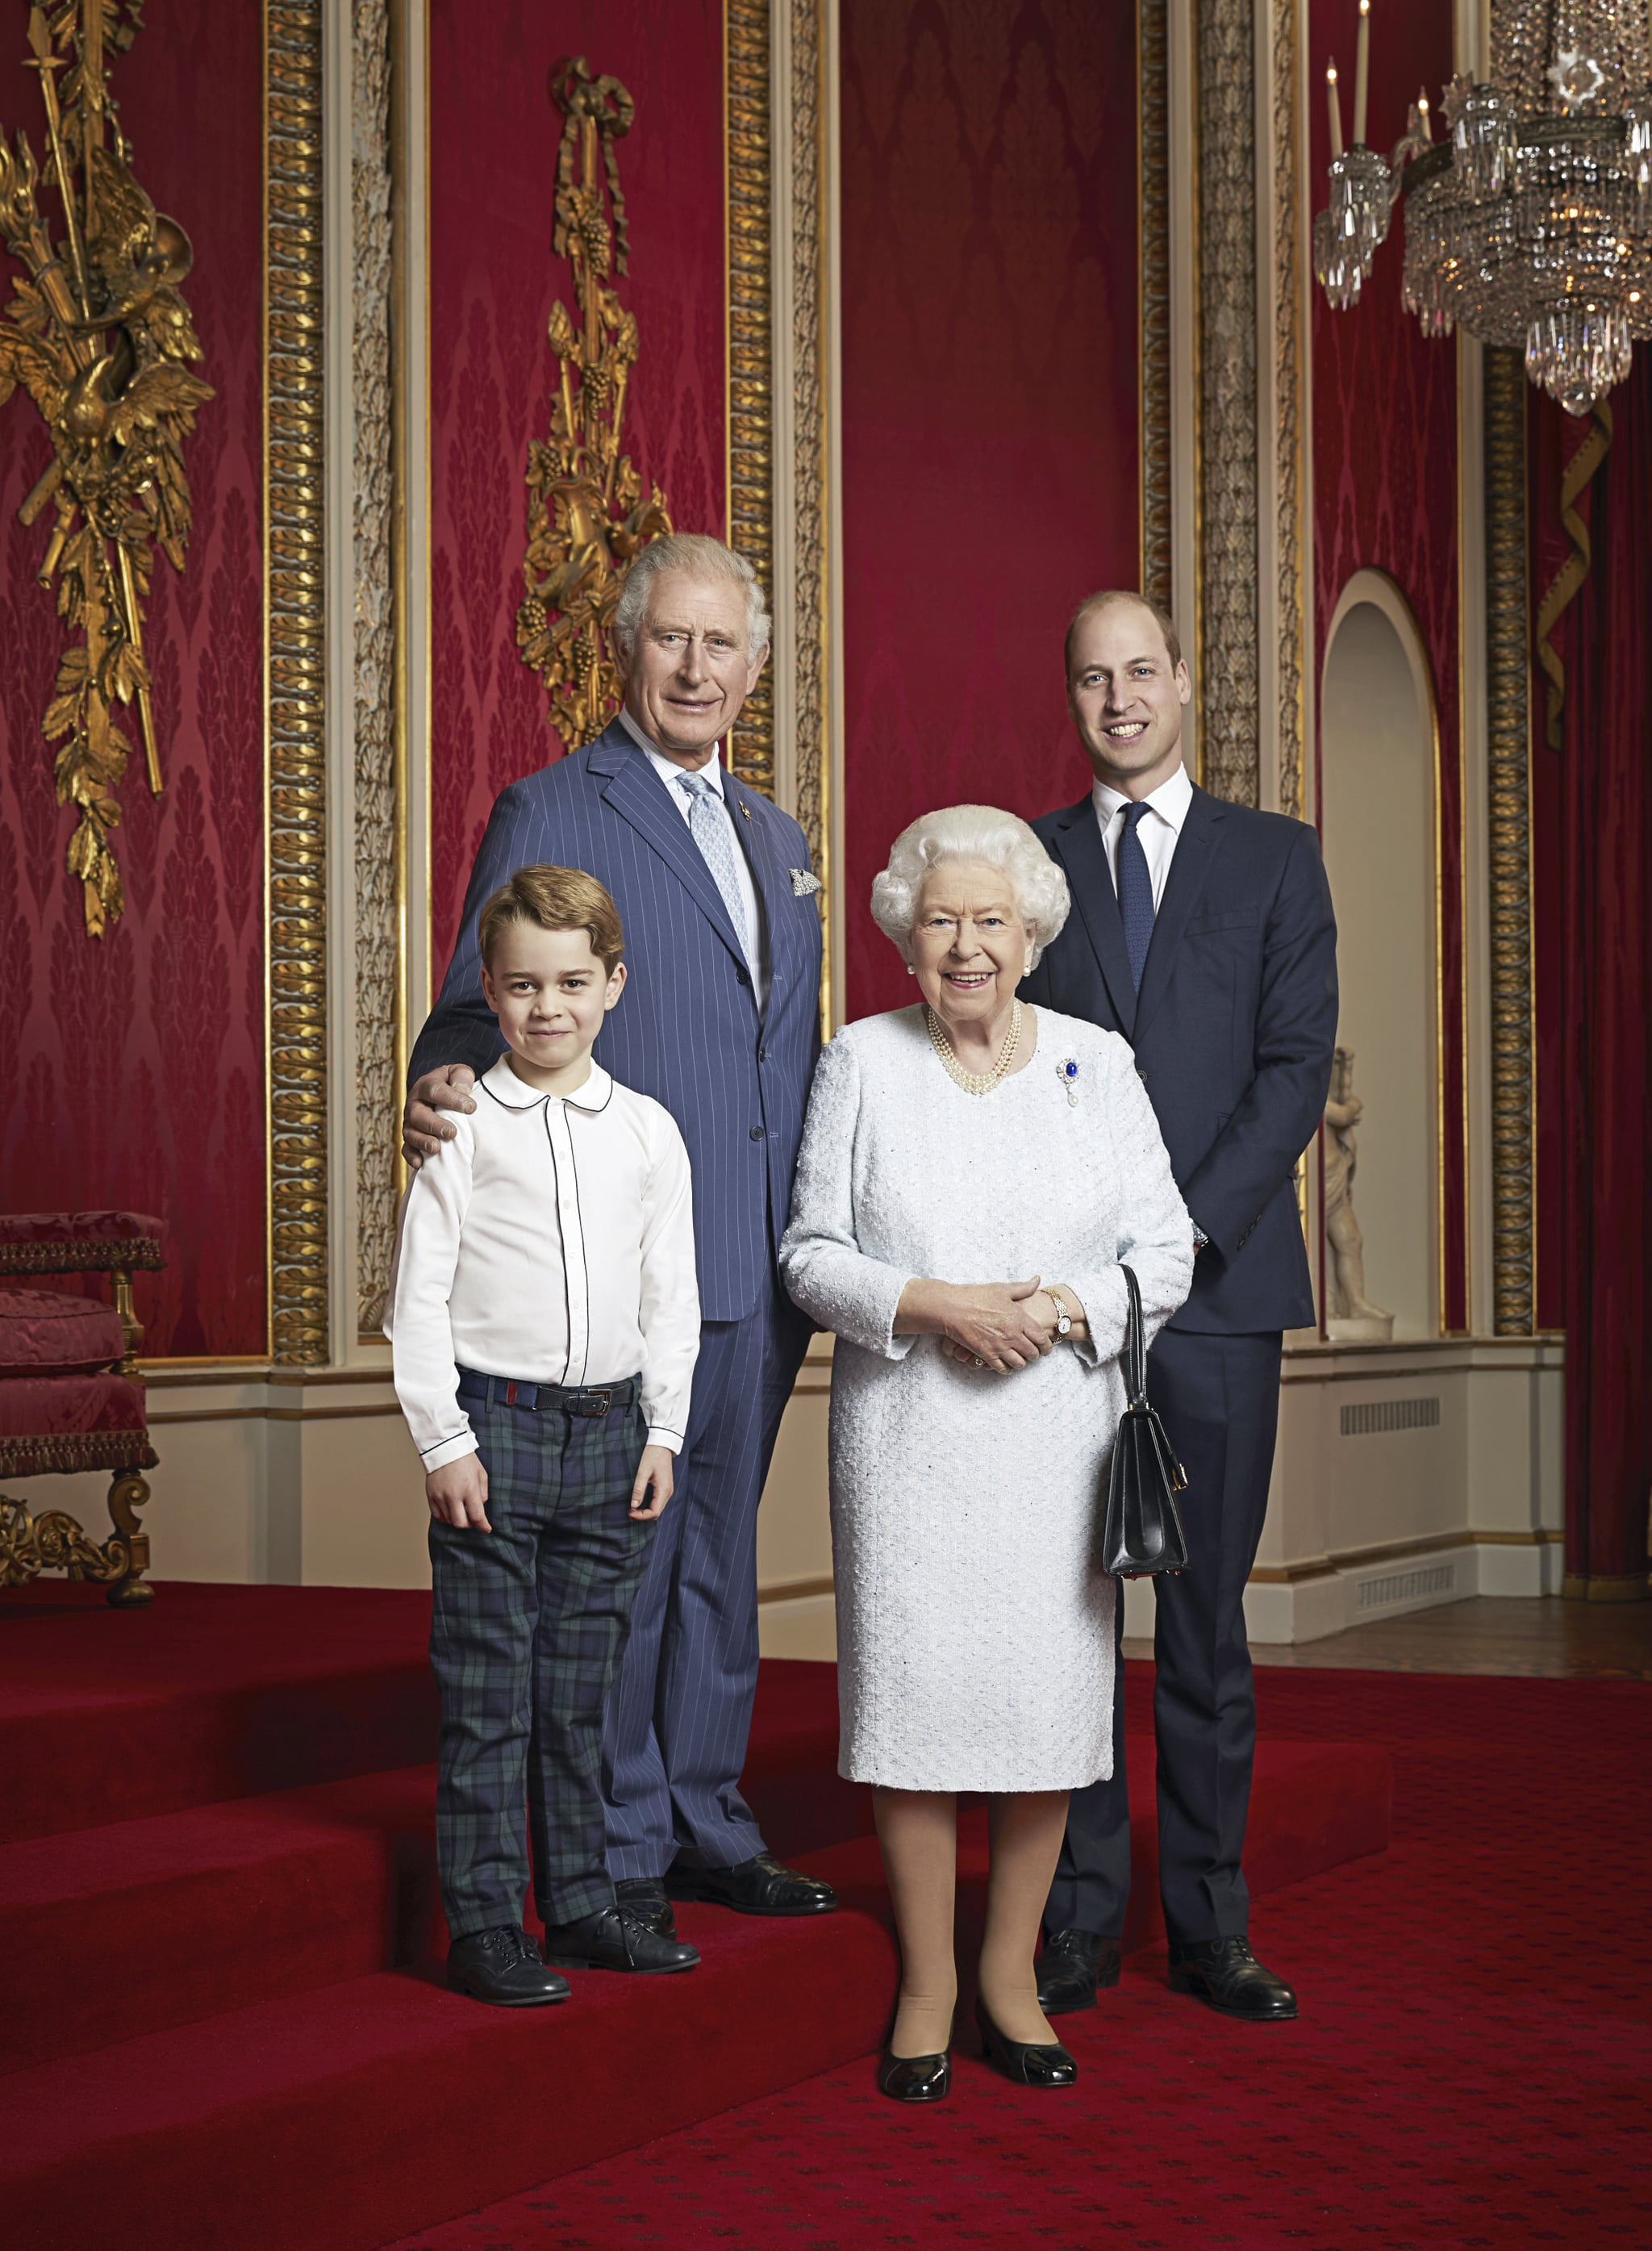 Royal Portrait. EMBARGOED UNTIL 2200 FRIDAY JANUARY 3, 2020. MANDATORY CREDIT: Ranald Mackechnie. This photograph is solely for news editorial use only; no charge should be made for the supply, release or publication of the photograph; no commercial use whatsoever of the photograph (including any use in merchandising, advertising or any other non-editorial use); not for use after 15th January 2020 without prior permission from Royal Communications. The photograph must not be digitally enhanced, manipulated or modified in any manner or form and must include all of the individuals in the photograph when published. This new portrait of Queen Elizabeth II, the Prince of Wales, the Duke of Cambridge and Prince George has been released to mark the start of a new decade. This is only the second time such a portrait has been issued. The first was released in April 2016 to celebrate Her Majesty's 90th birthday. The portrait was then used on special commemorative stamps released by the Royal Mail. This new portrait was taken by the same photographer, Ranald Mackechnie, in the Throne Room at Buckingham Palace on Wednesday December 18, 2019. Publications are asked to credit the photograph to Ranald Mackechnie. Issue date: Friday January 3, 2020. See PA story ROYAL Portrait. Photo credit should read: Ranald Mackechnie. URN:49332701 (Press Association via AP Images)